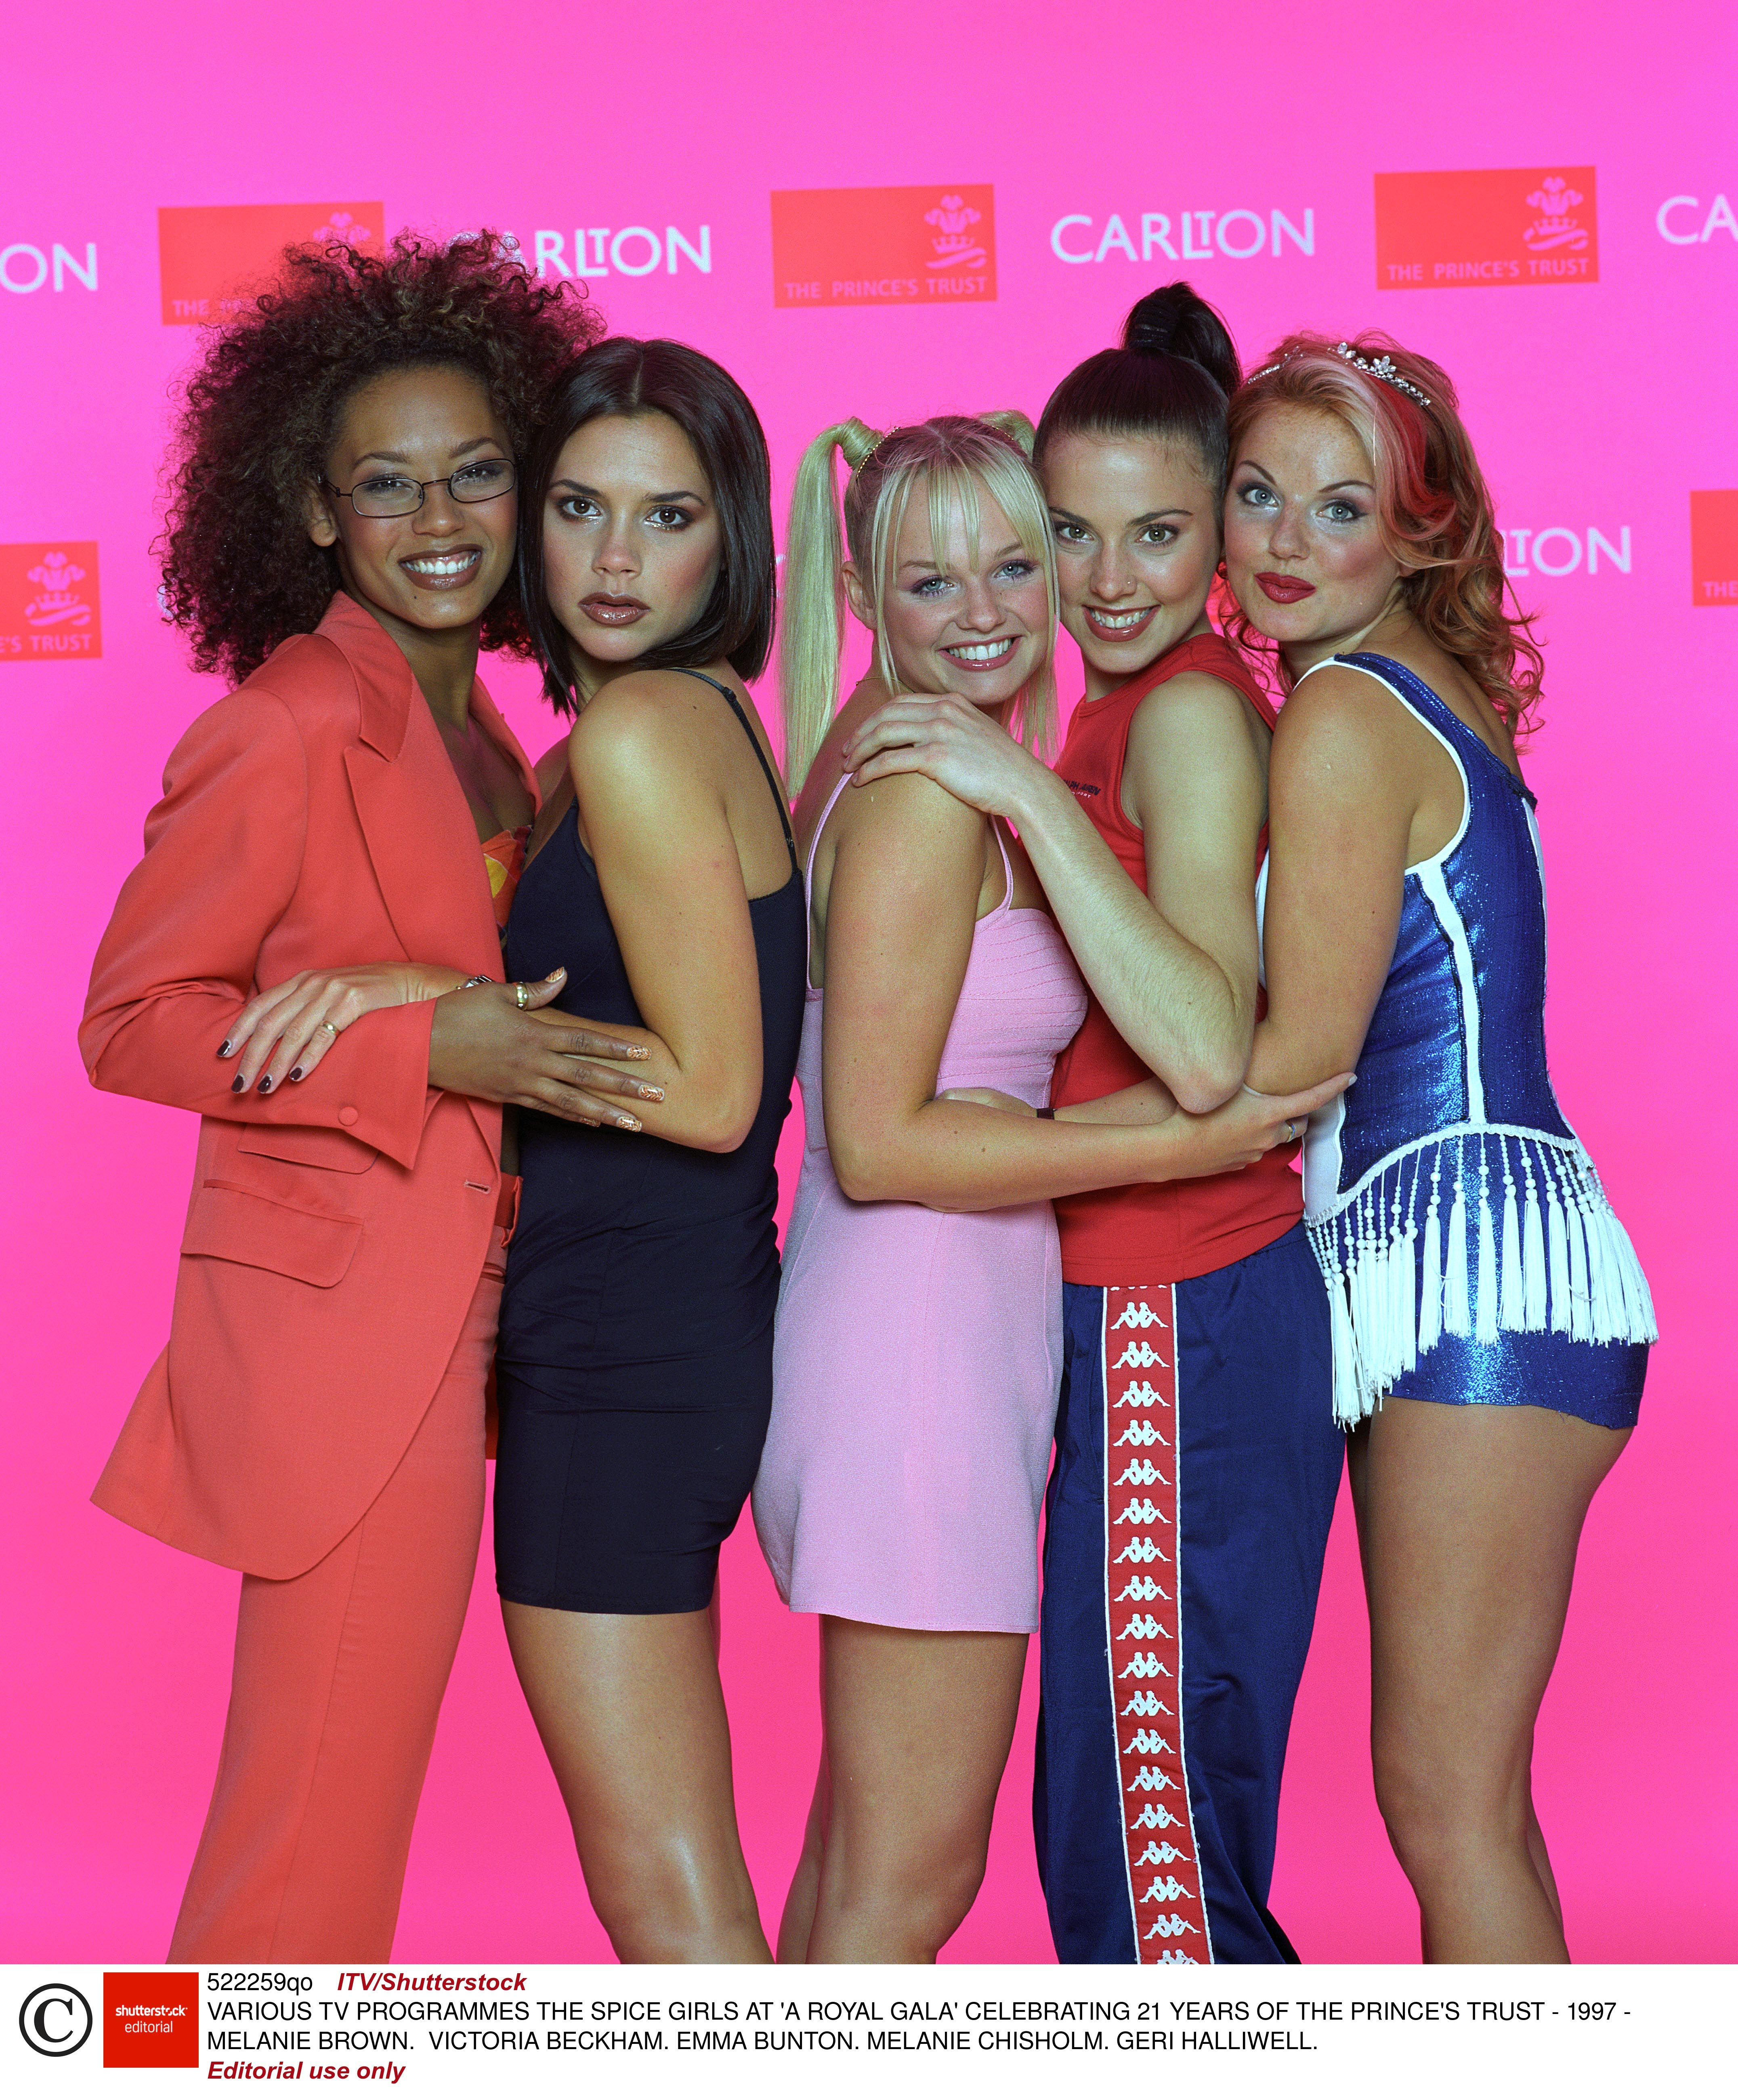 A new Spice Girls movie is coming and it's all too much!